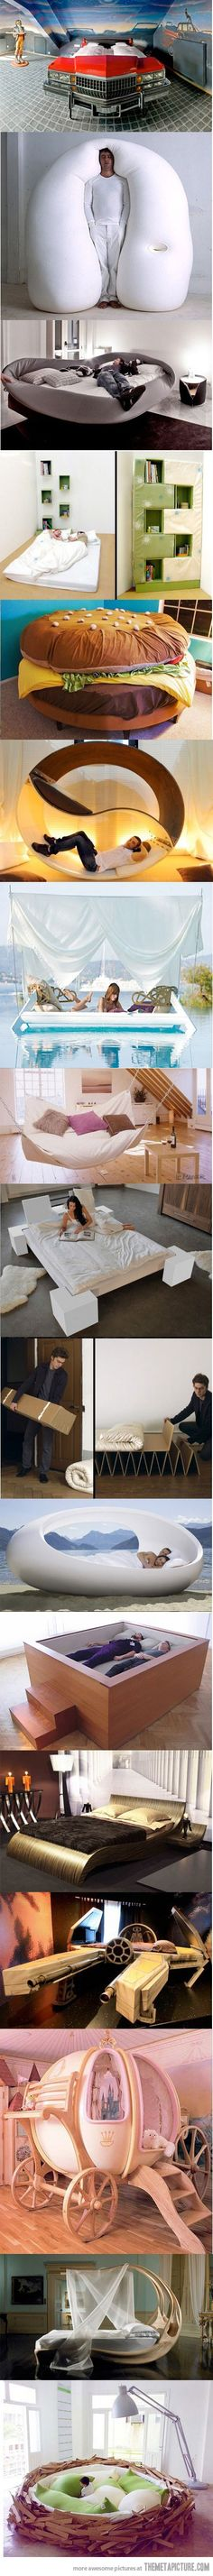 Day beds... mmm